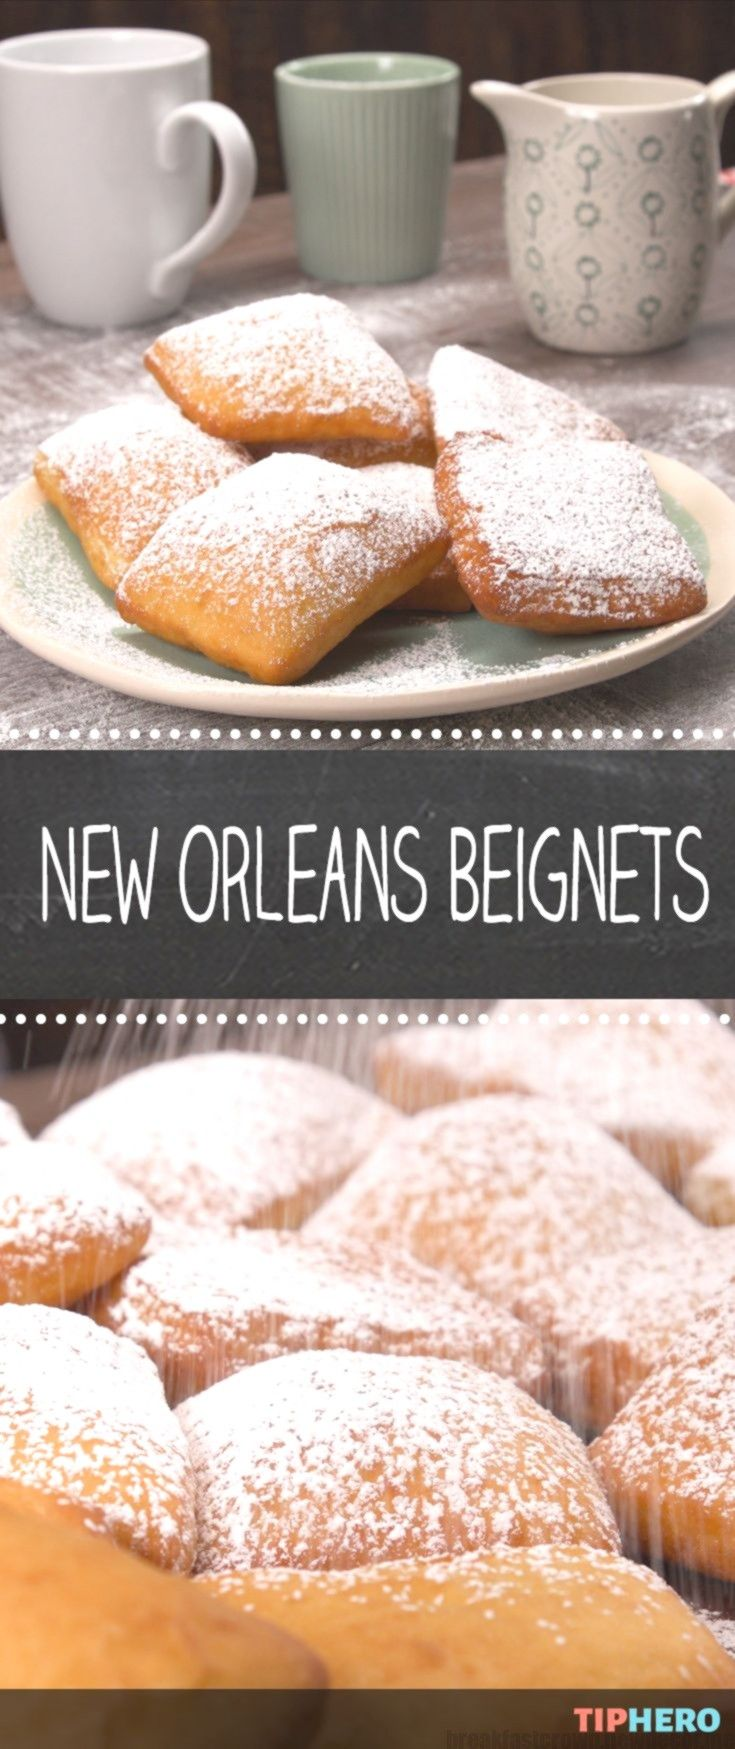 New Orleans Beignets We'll show you how to make pillowy, powdered sugar-cove... New Orleans Beignets We'll show you how to make pillowy, powdered sugar-cove...